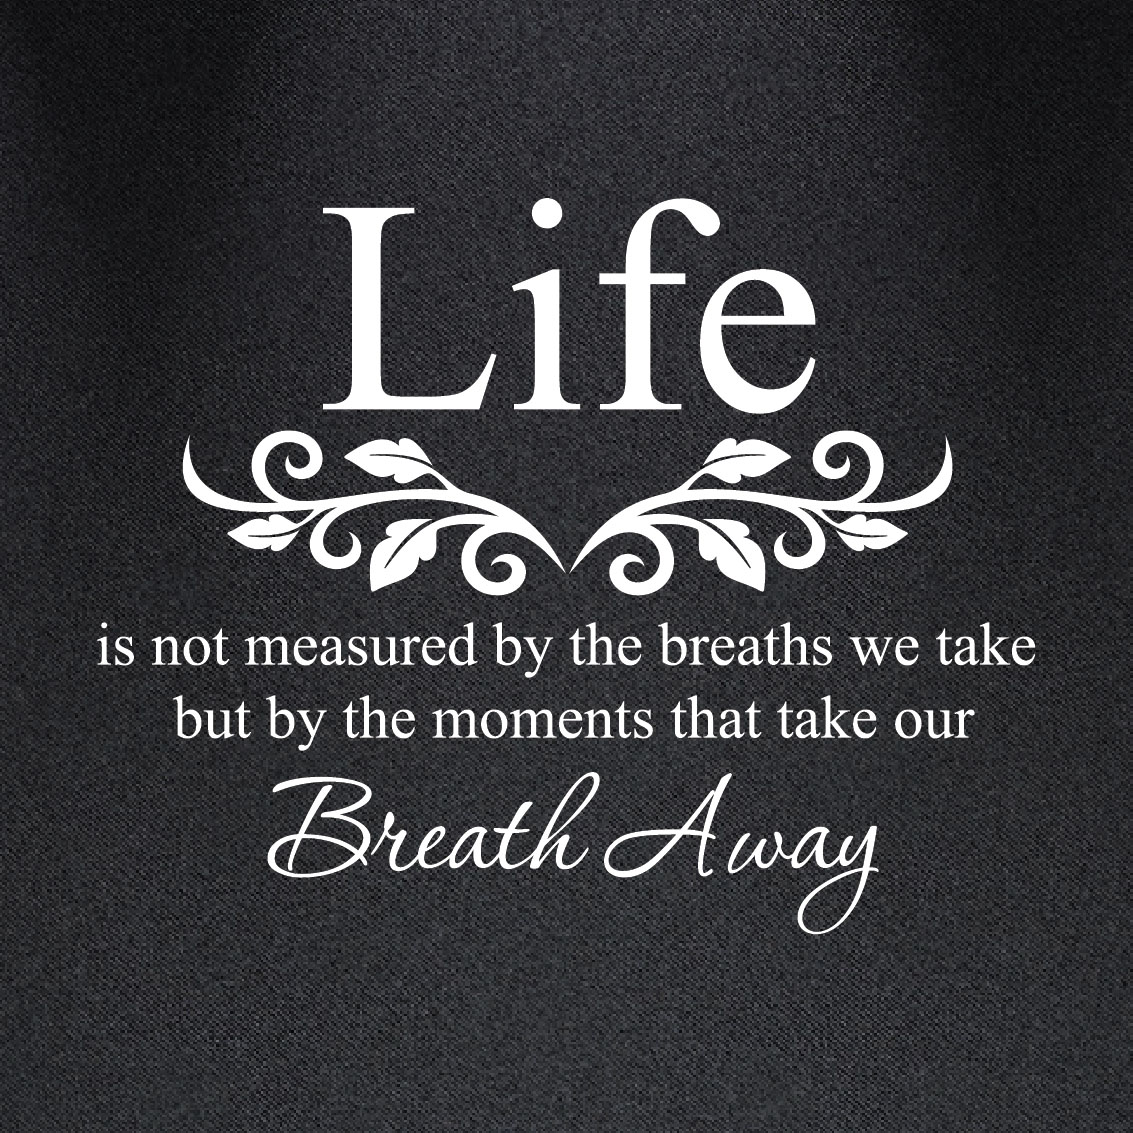 Life Is Not Measured By The Breaths Quote Life Is Not Measuredthe Breaths We Take Vinyl Wall Decal Art